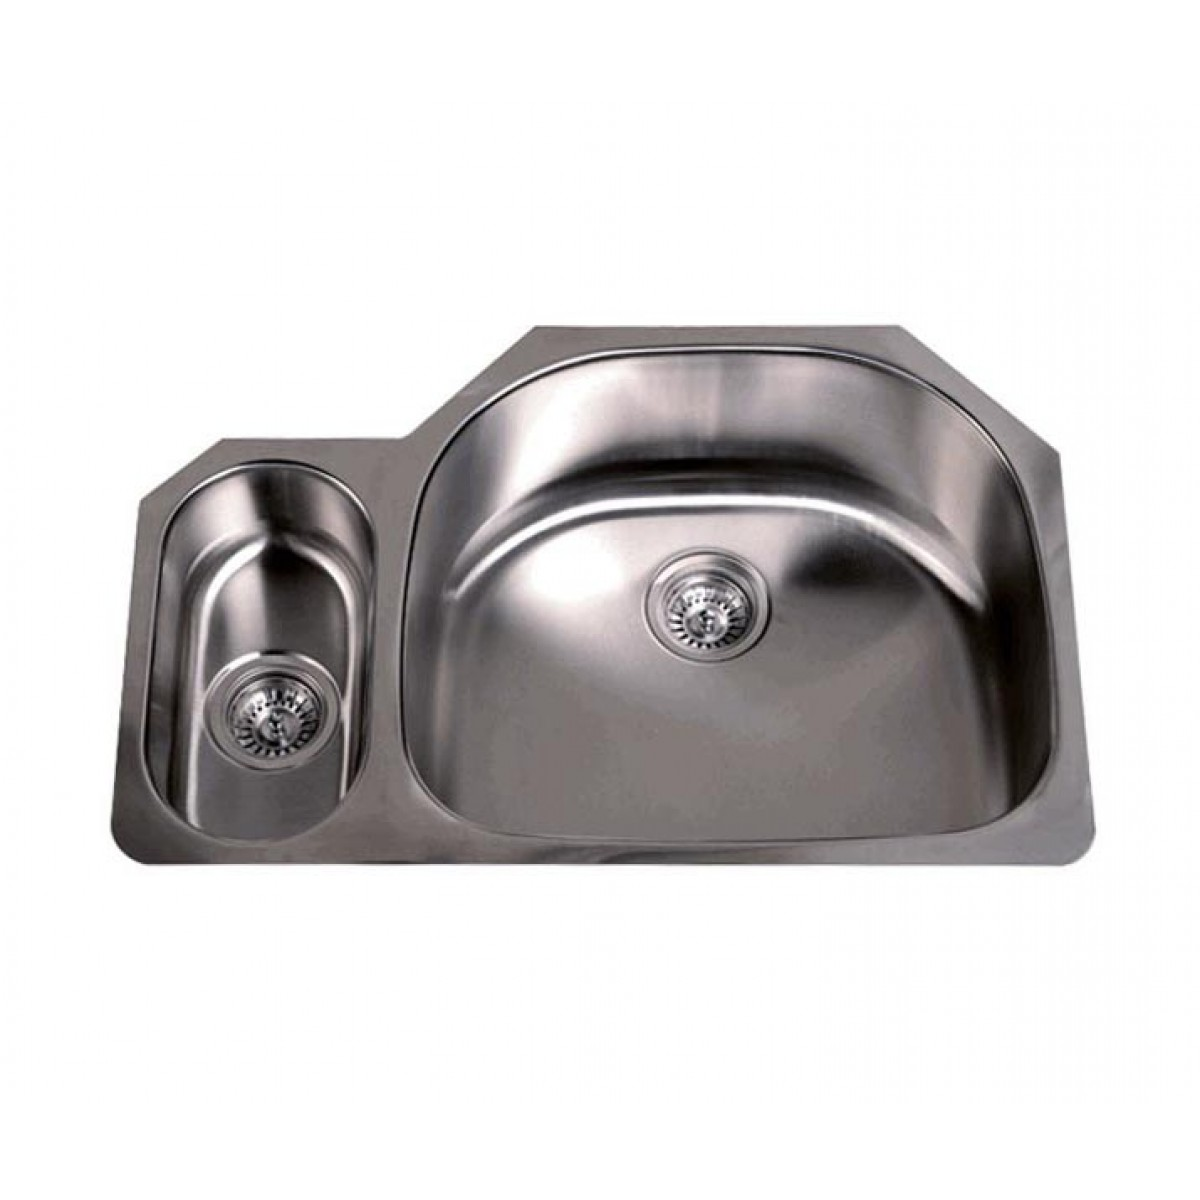 Small Double Sink Kitchen 32 inch stainless steel undermount 2080 double large and small d 32 inch stainless steel undermount 2080 double d bowl offset kitchen sink 16 gauge workwithnaturefo